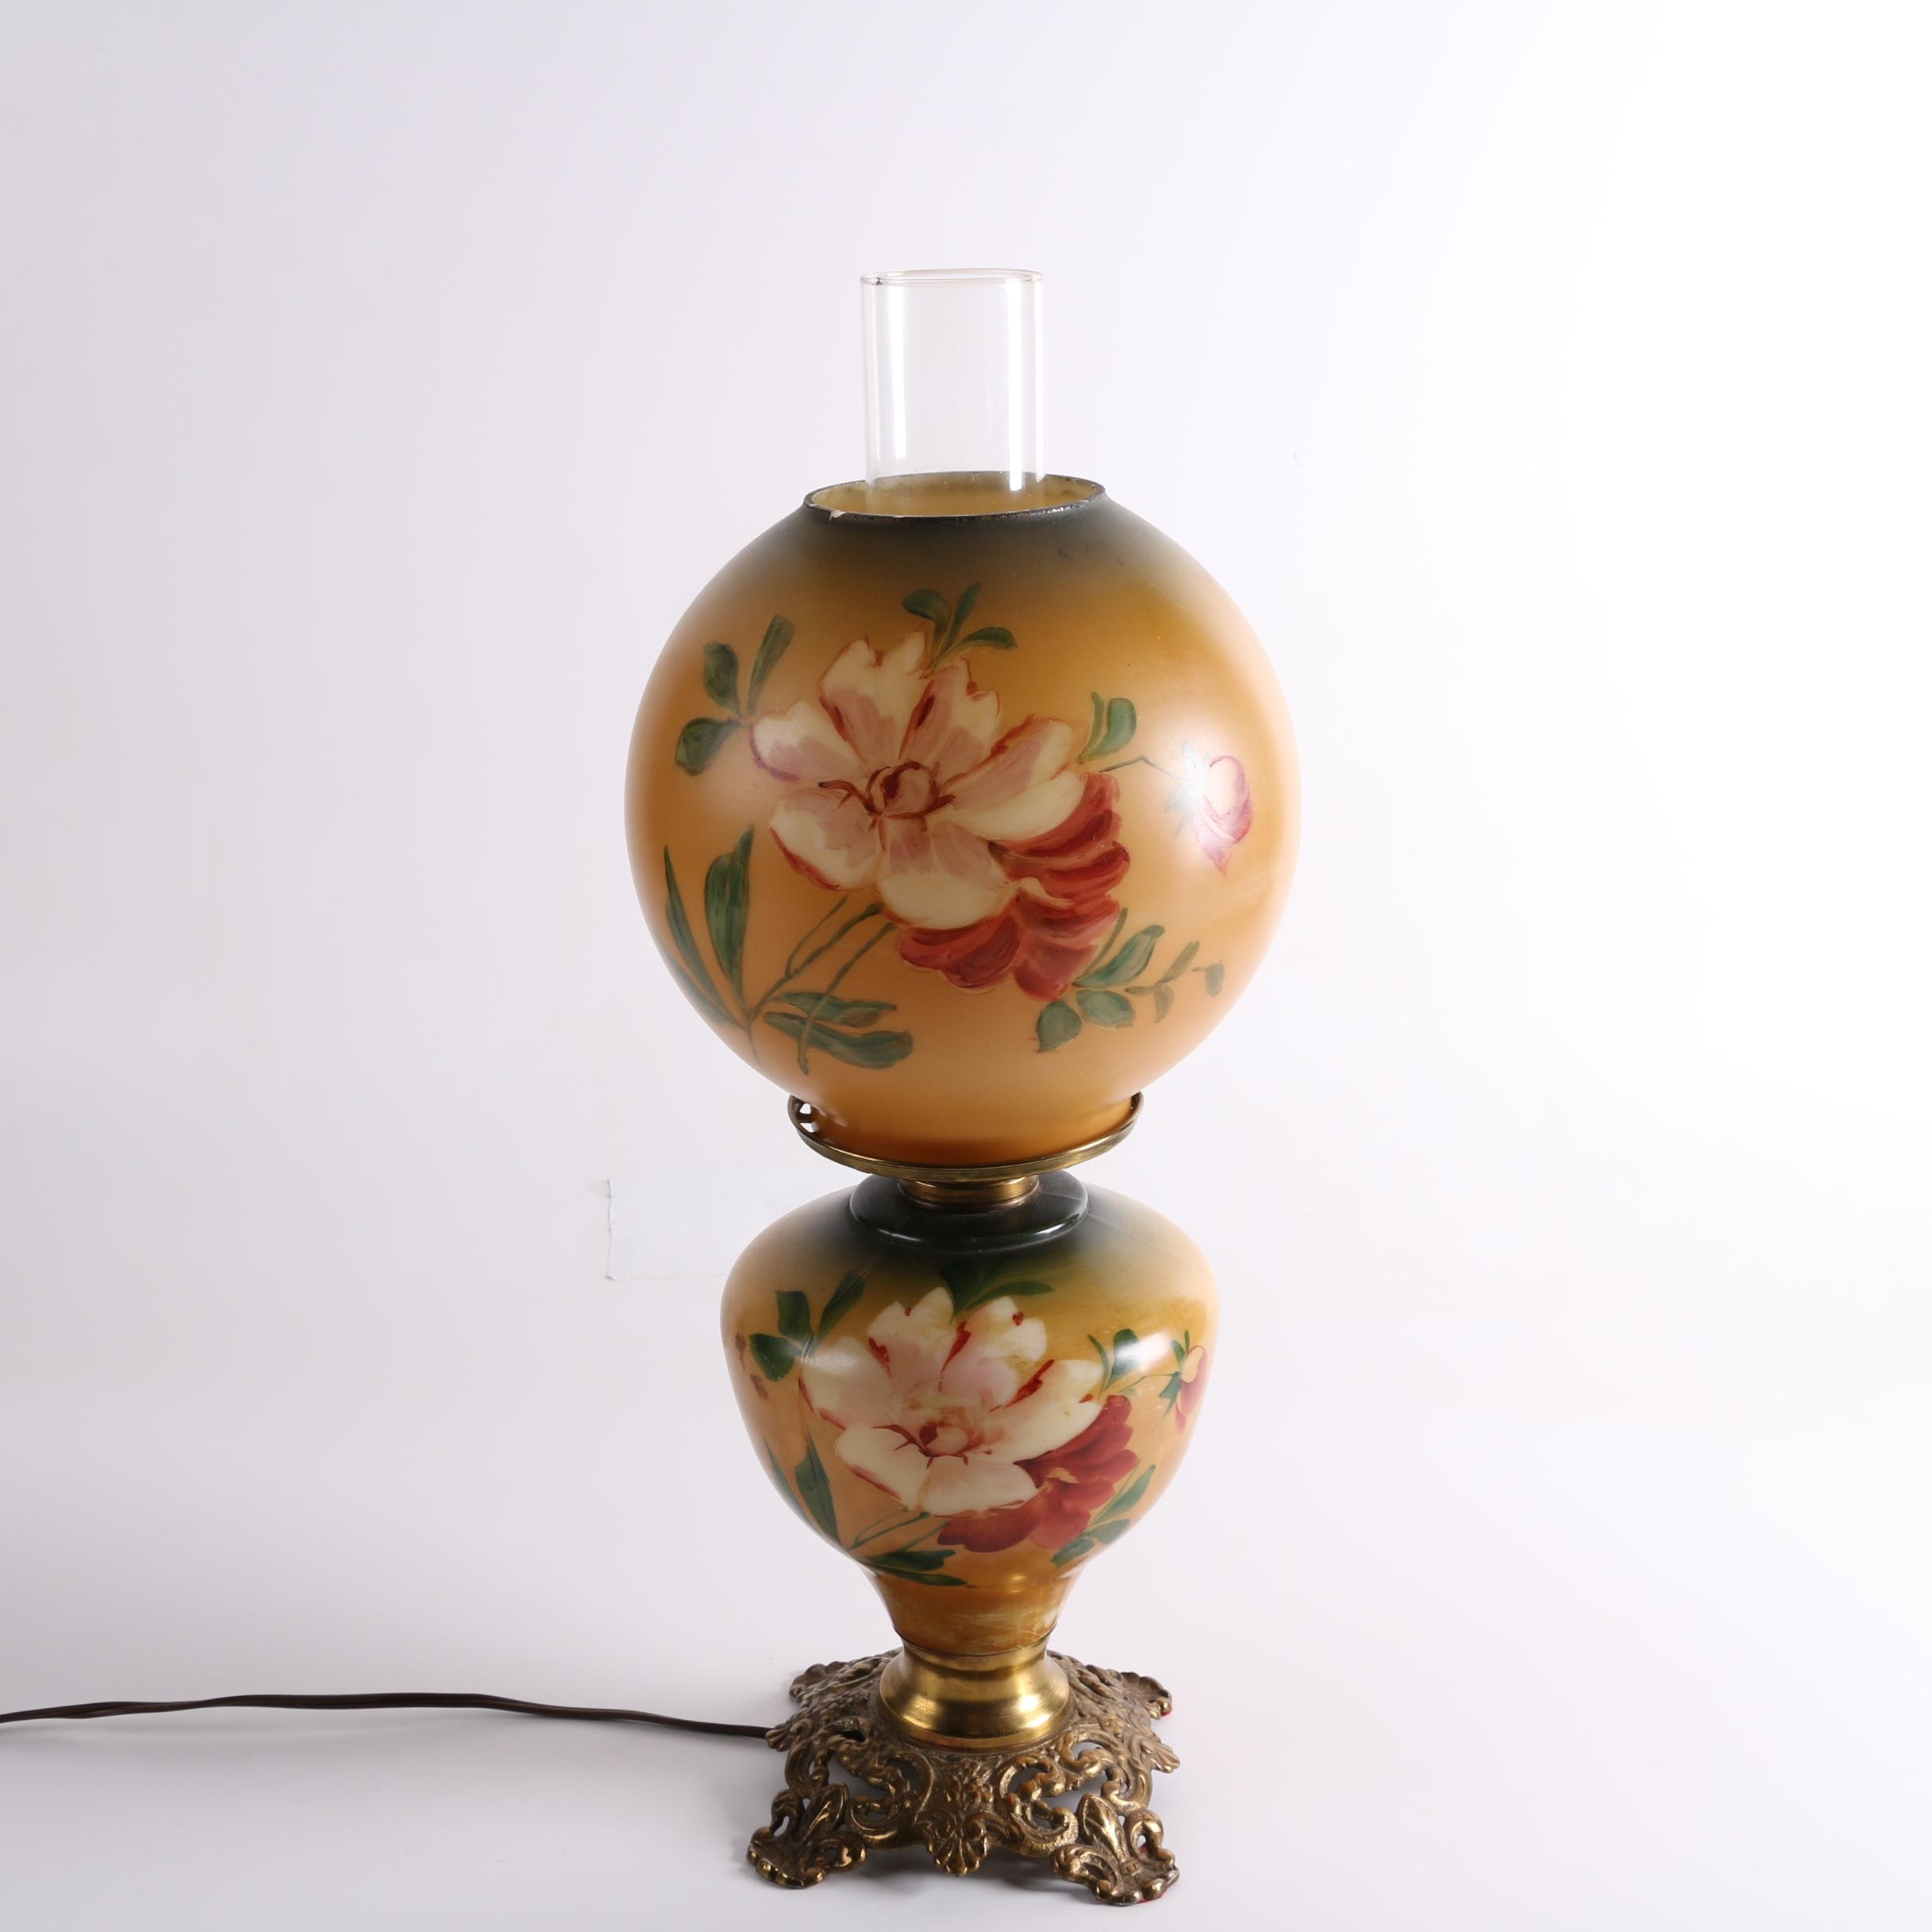 Replica Victorian Hand-Painted Oil Lamp in the Style of Parlor Lamp